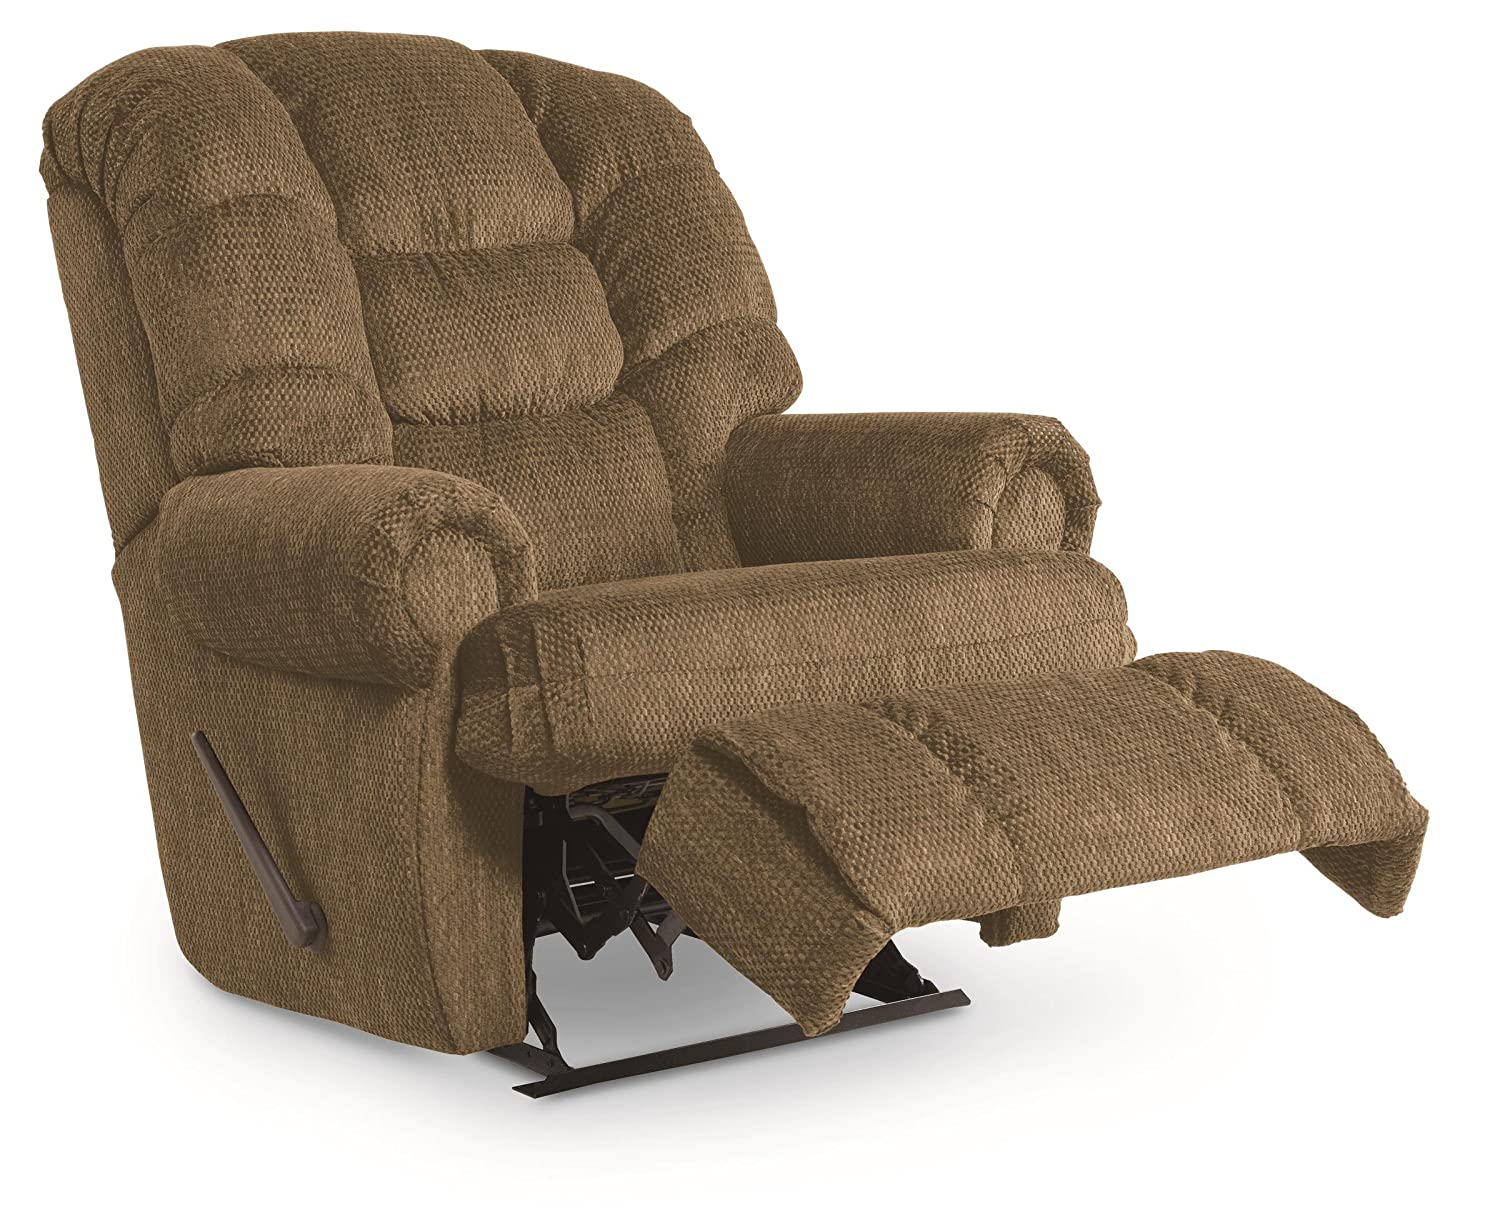 recliners furnishings best furniture home